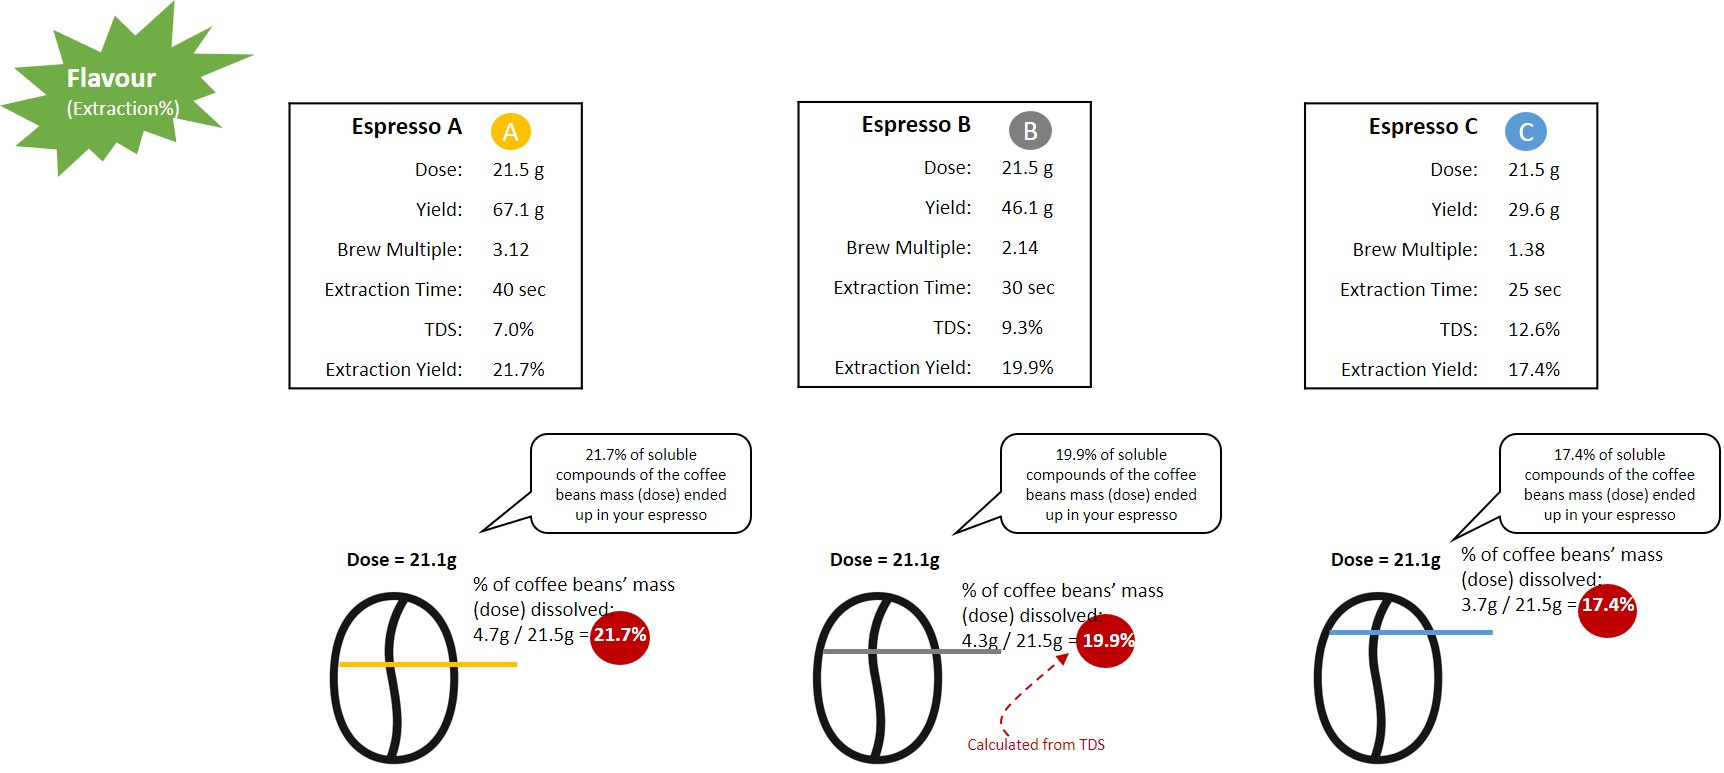 what is the extraction yield for espressos